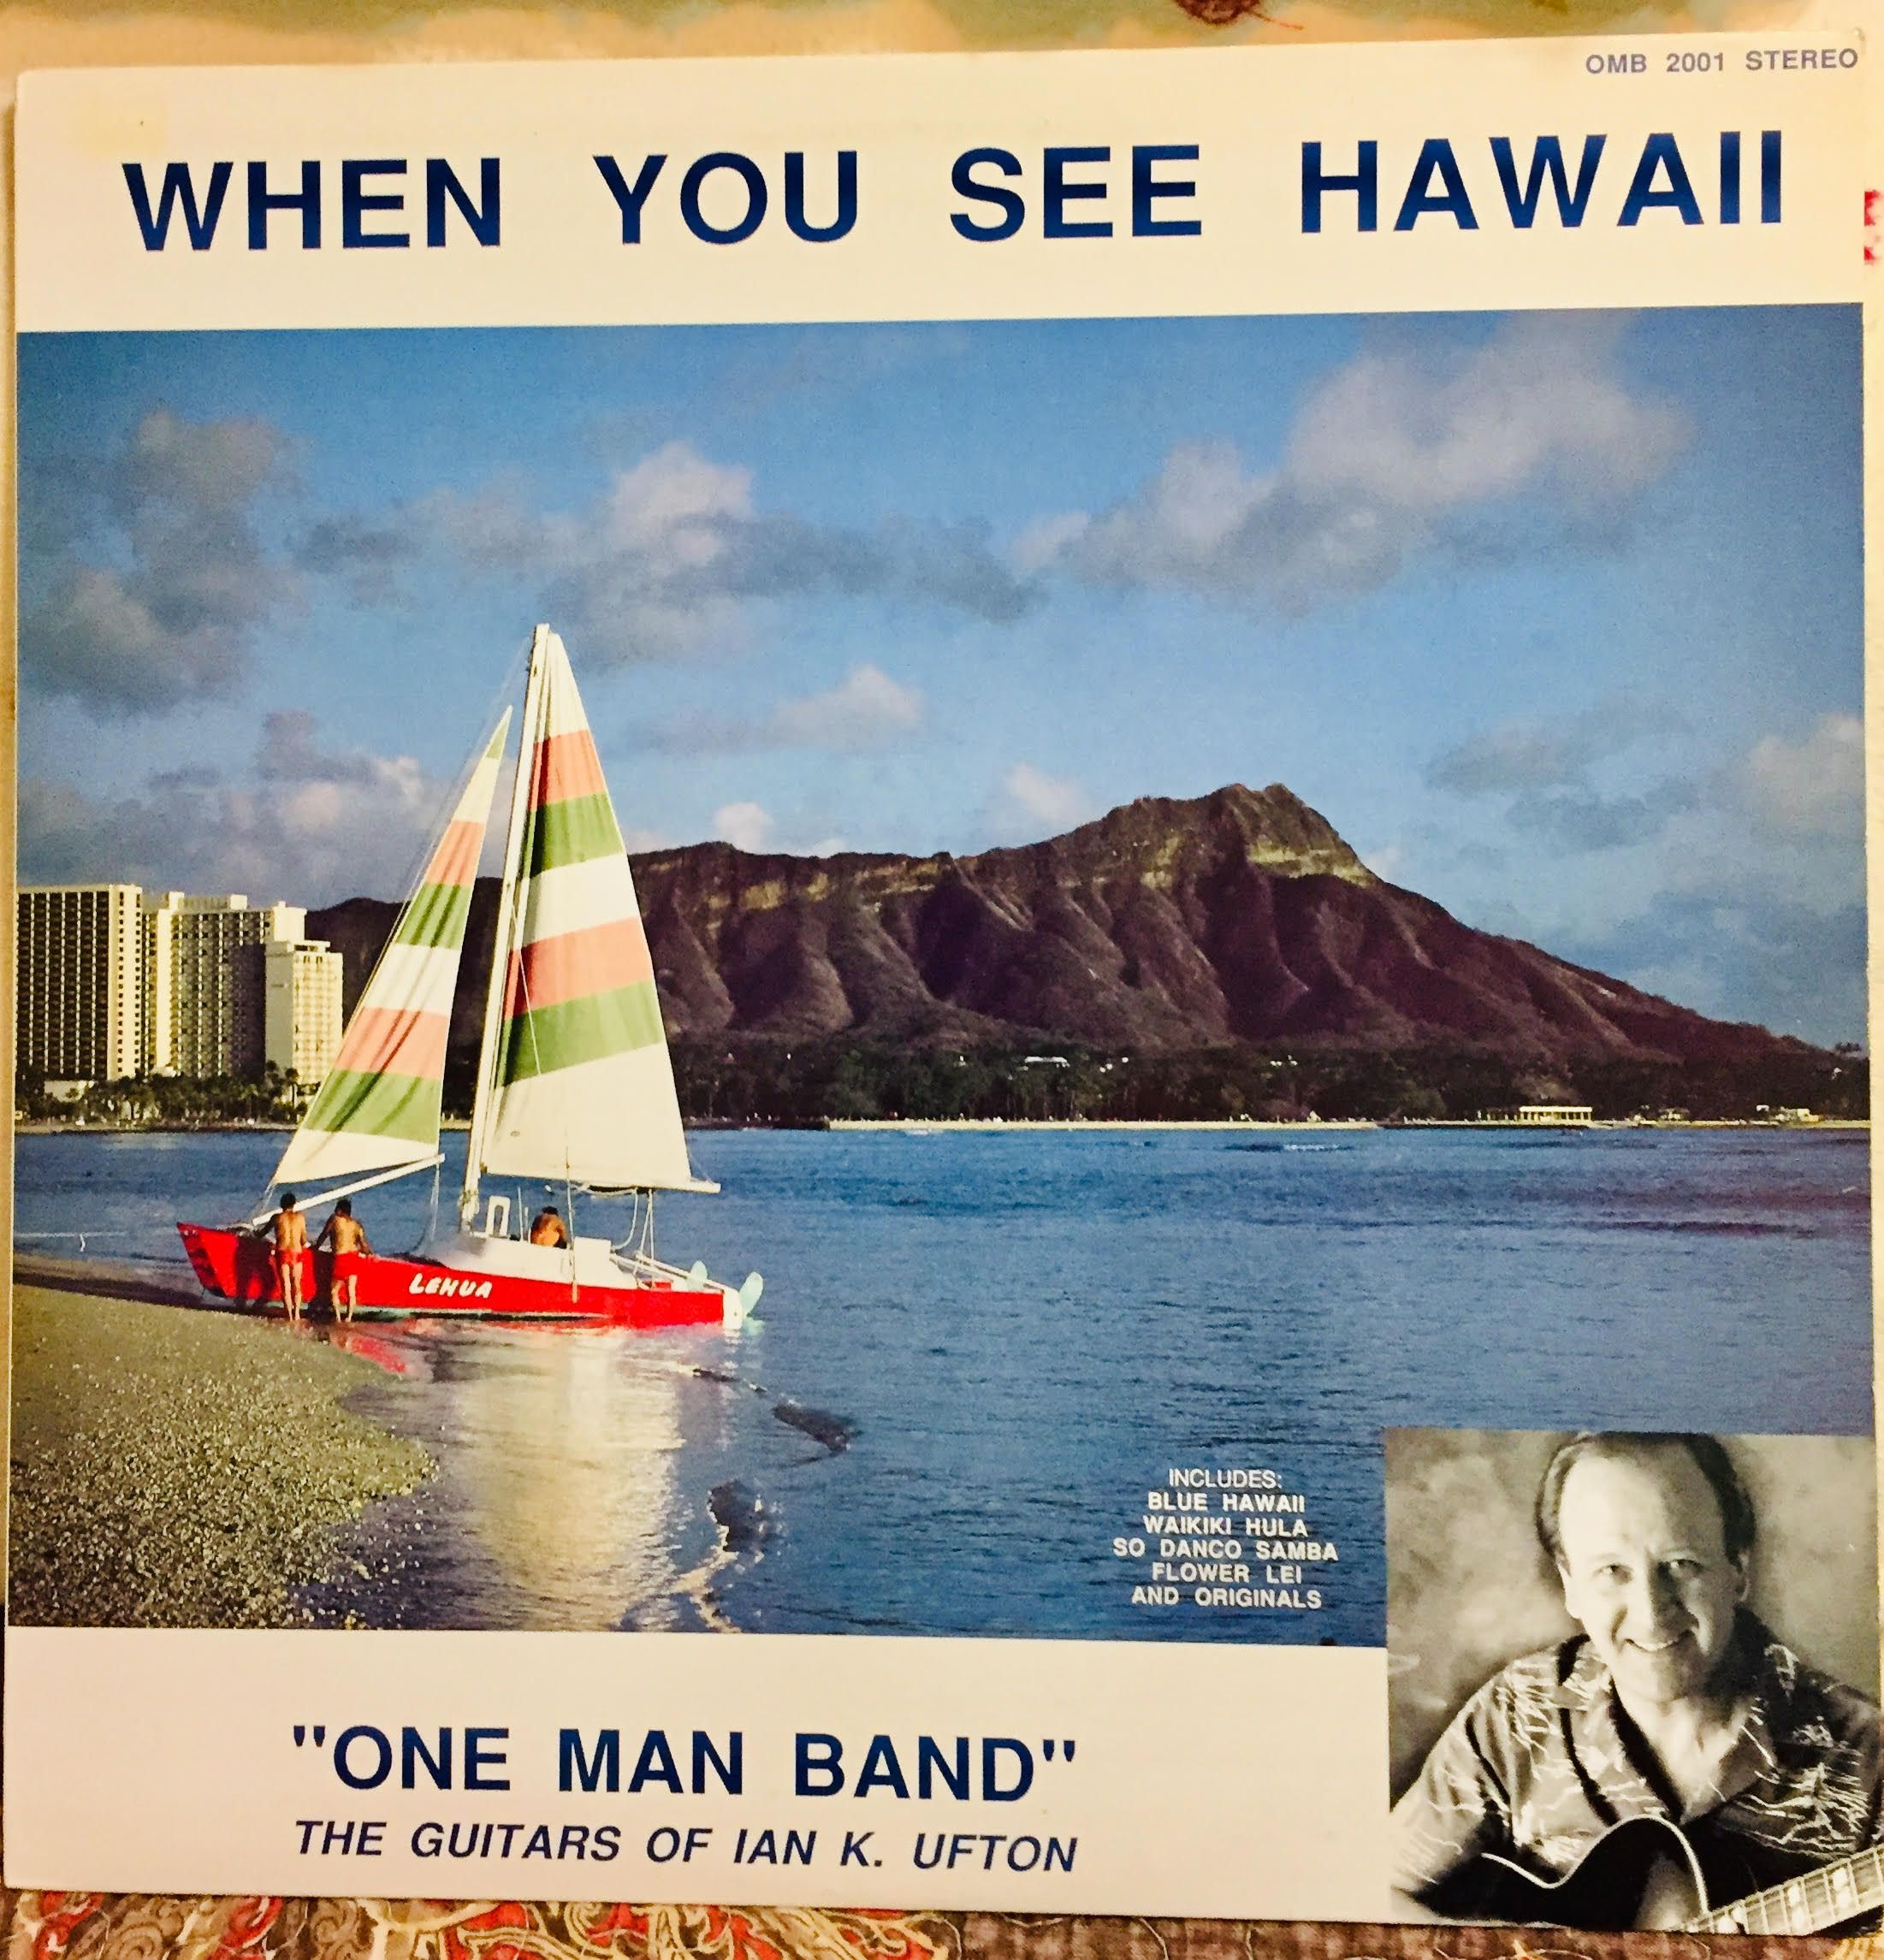 When You See Hawaii by Ian K  Ufton (One Band Band, The Guitars Of